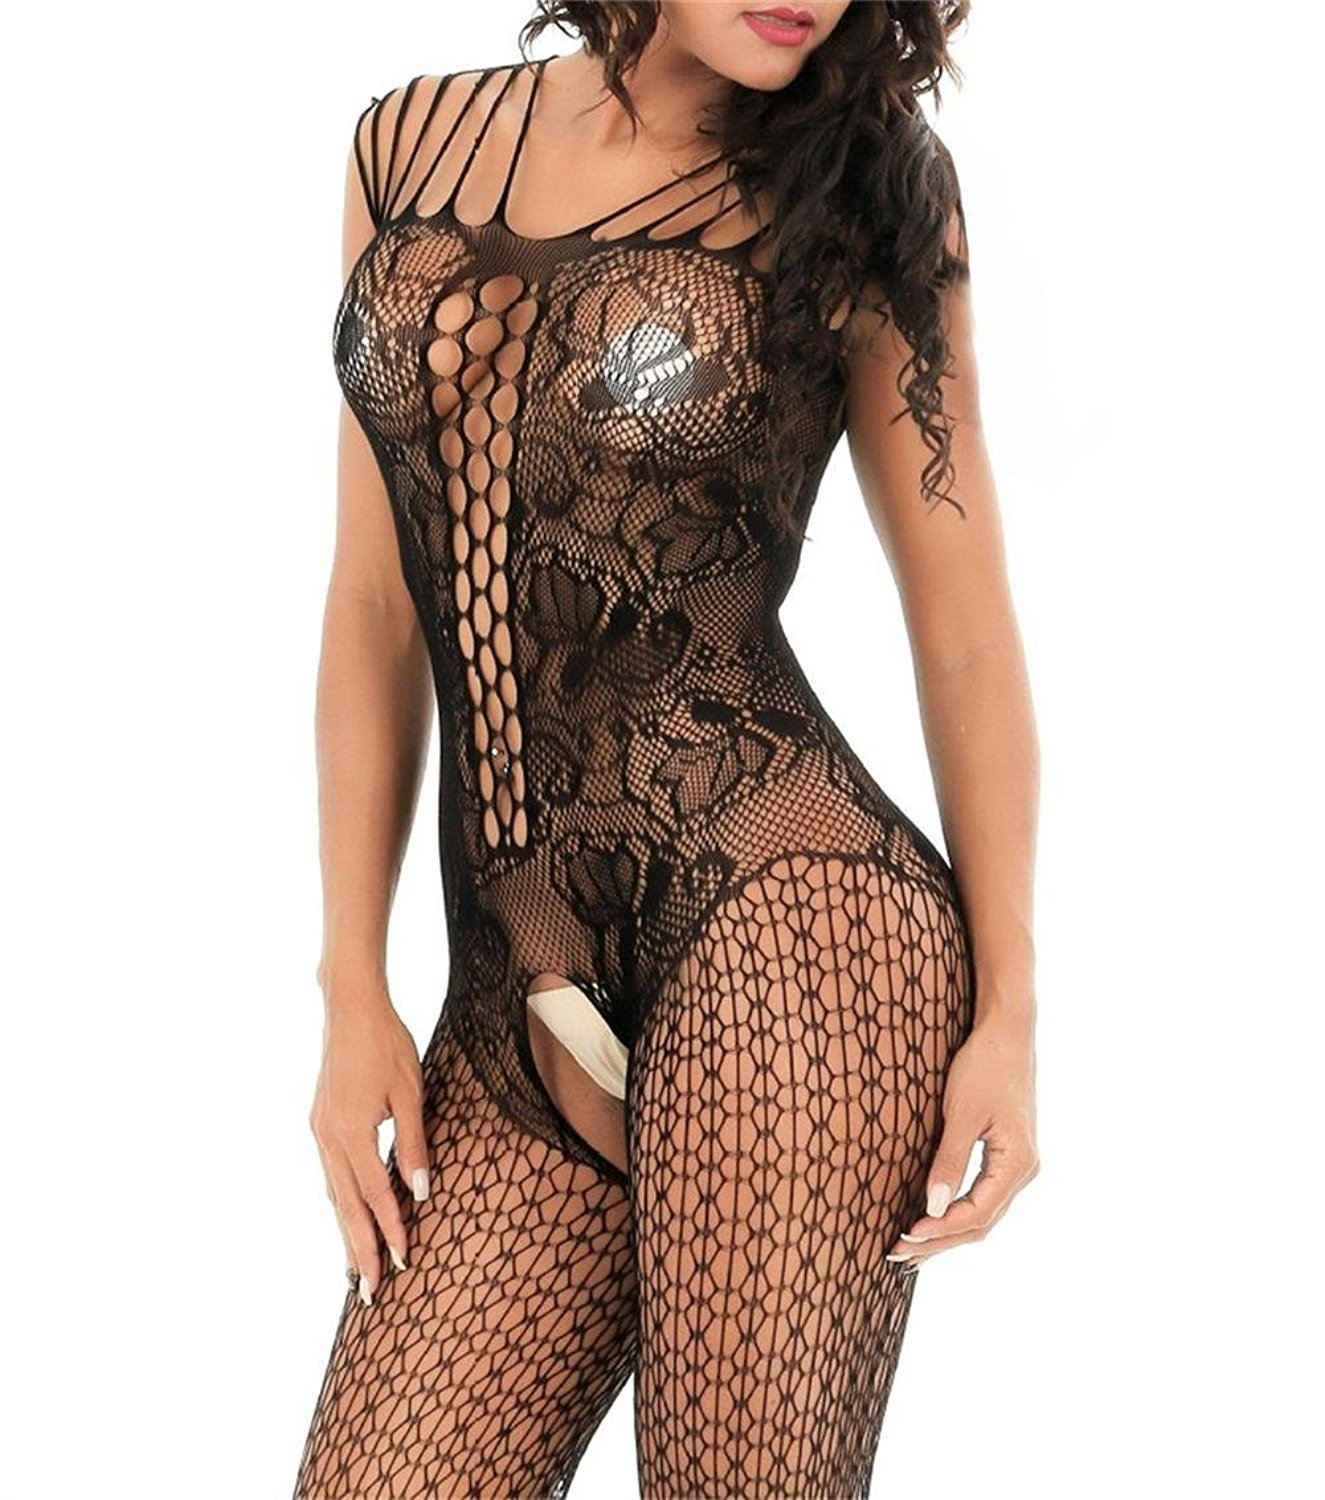 06162114e71 ... Curbigals crotchless bodystocking Plus Size Open Crotch Teddy Lingerie  for Women ...